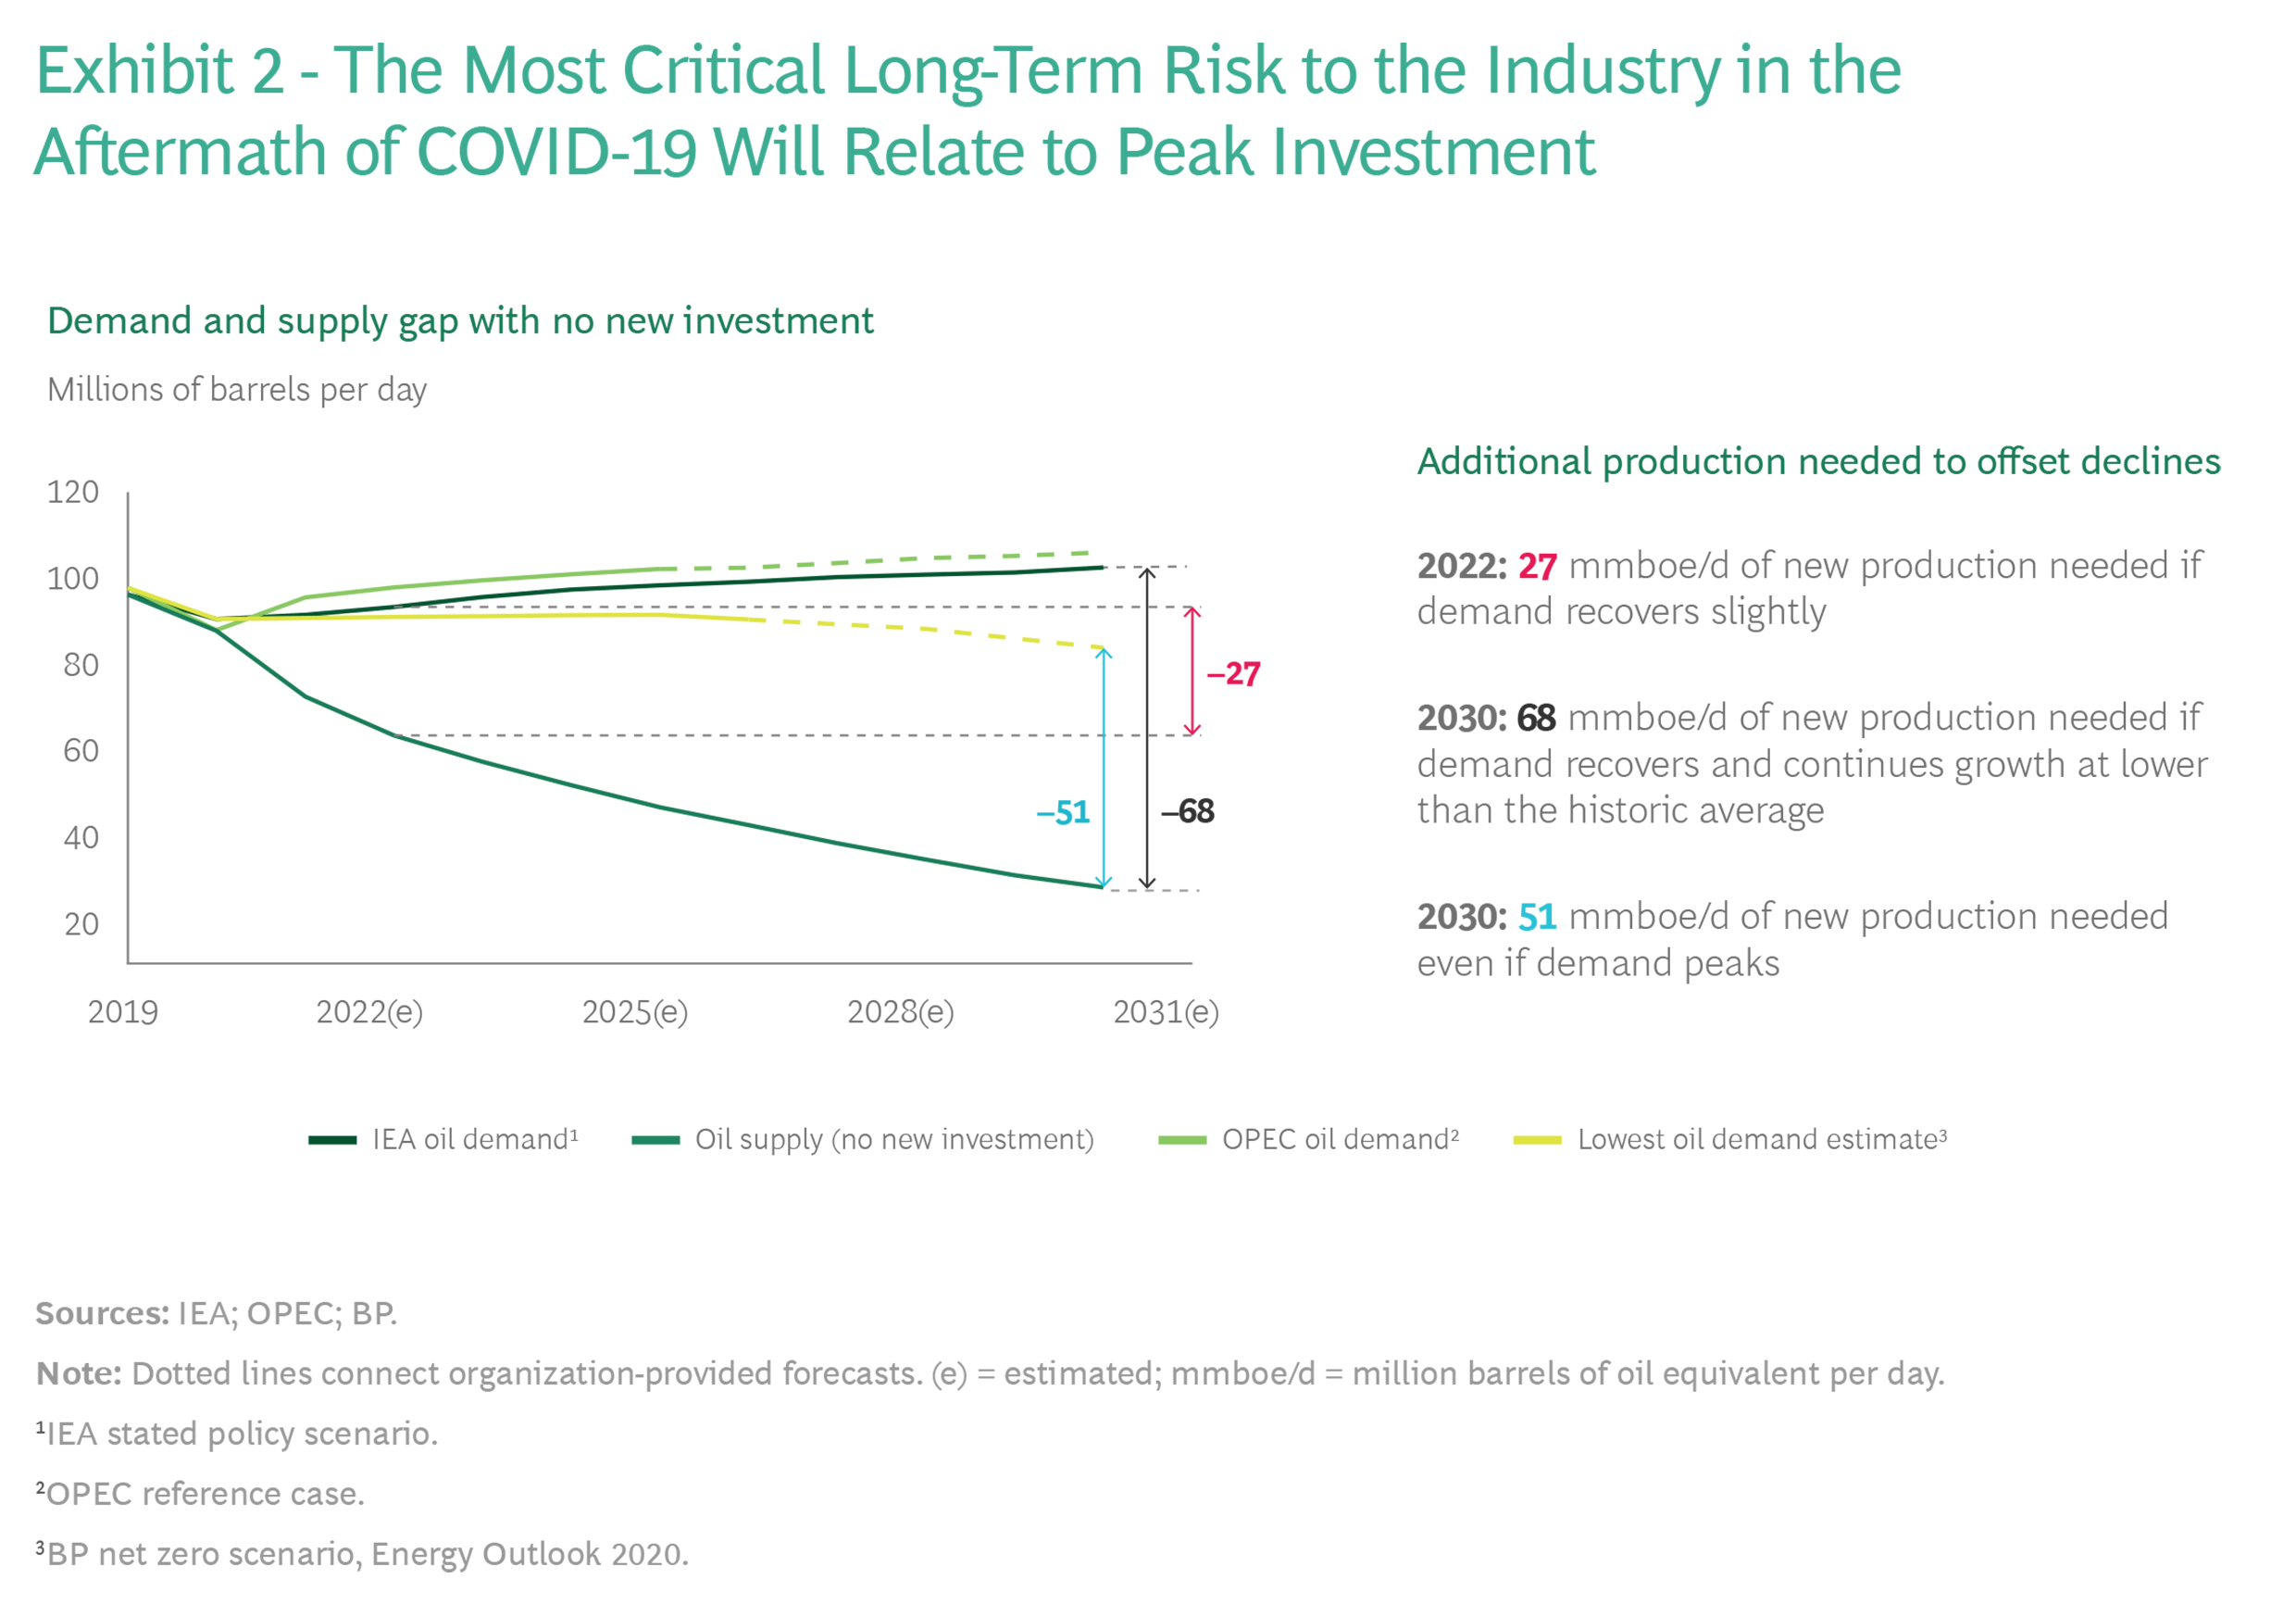 the most critical long-term risk to the industry is the aftermath of COVID-19 will relate to investment